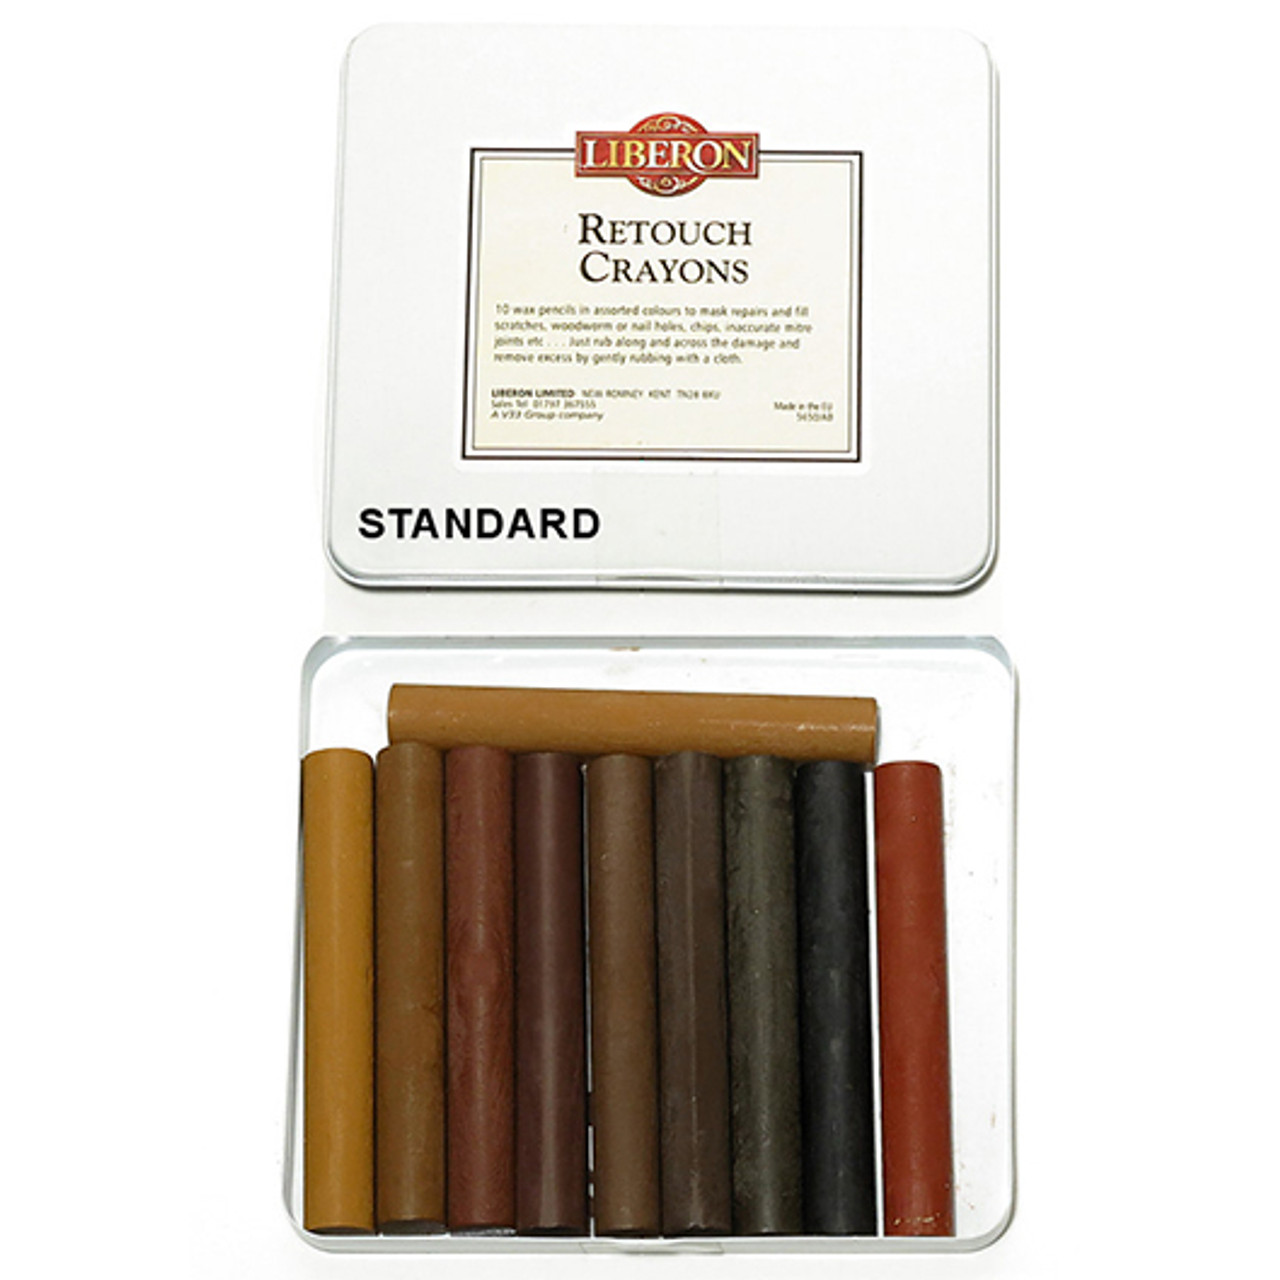 Standard Retouch Crayons (Tin of 10)